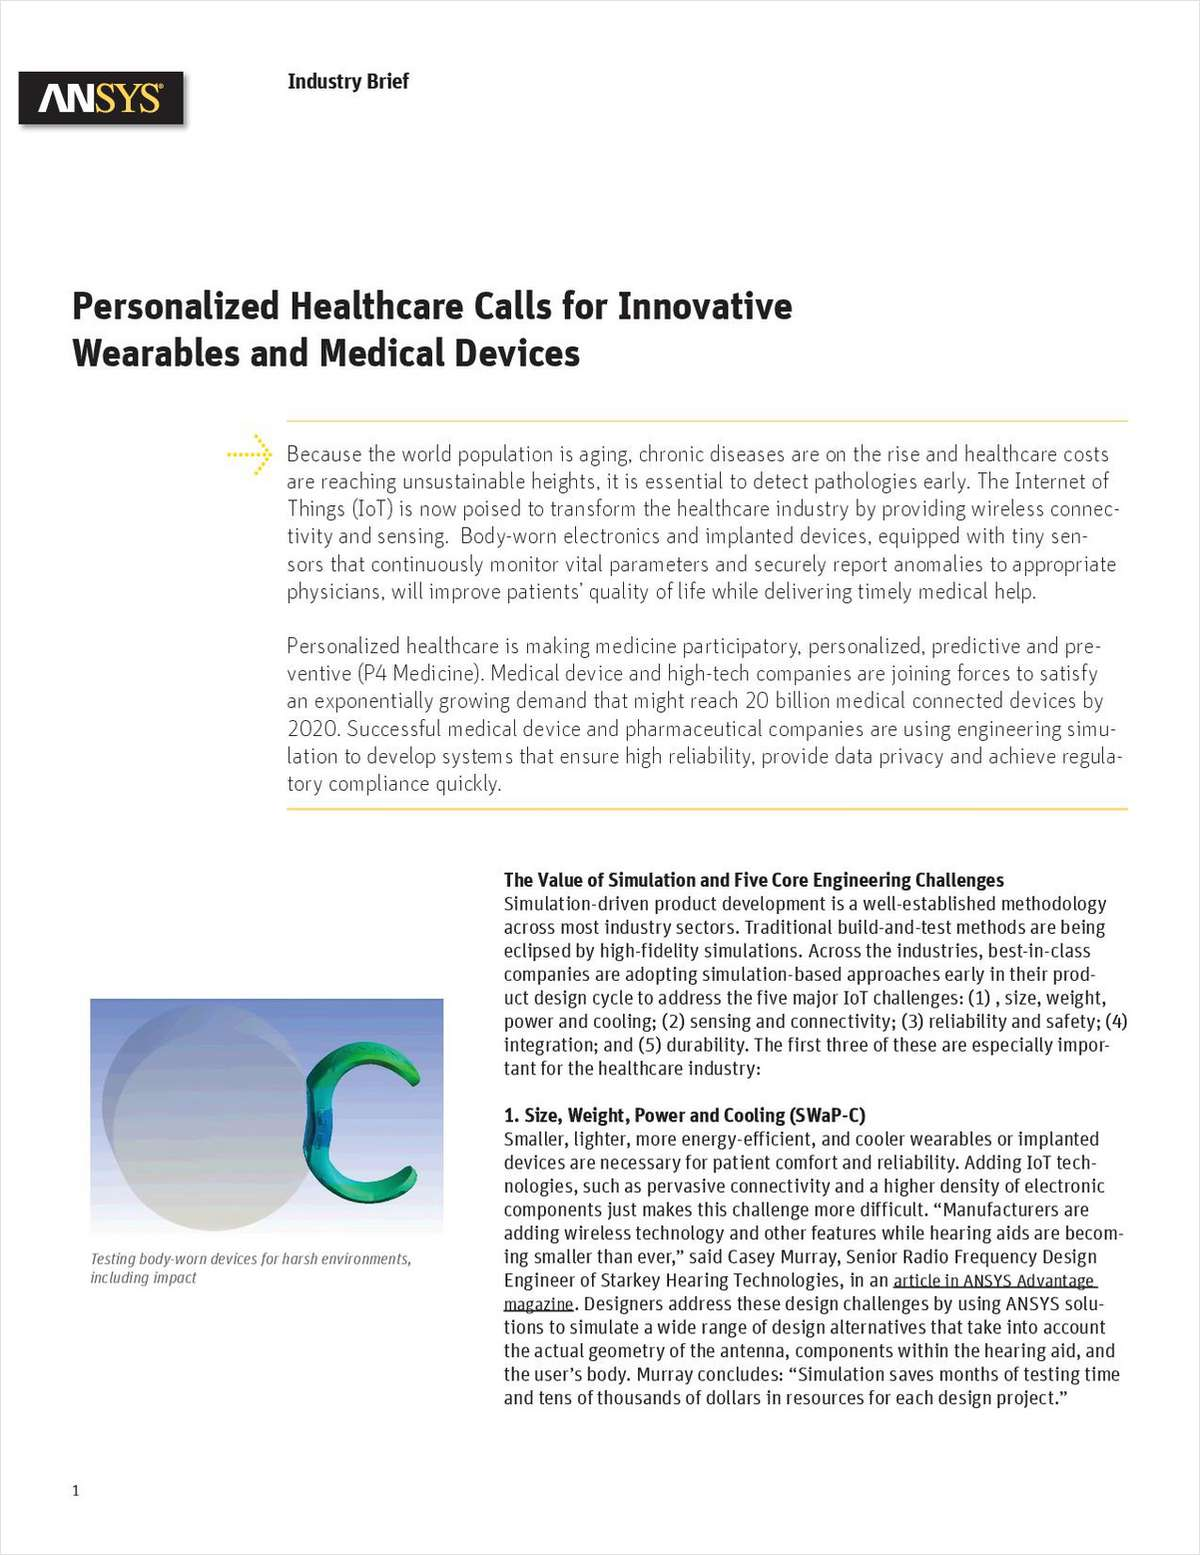 Personalized Healthcare Calls for Innovative Wearables and Medical Devices